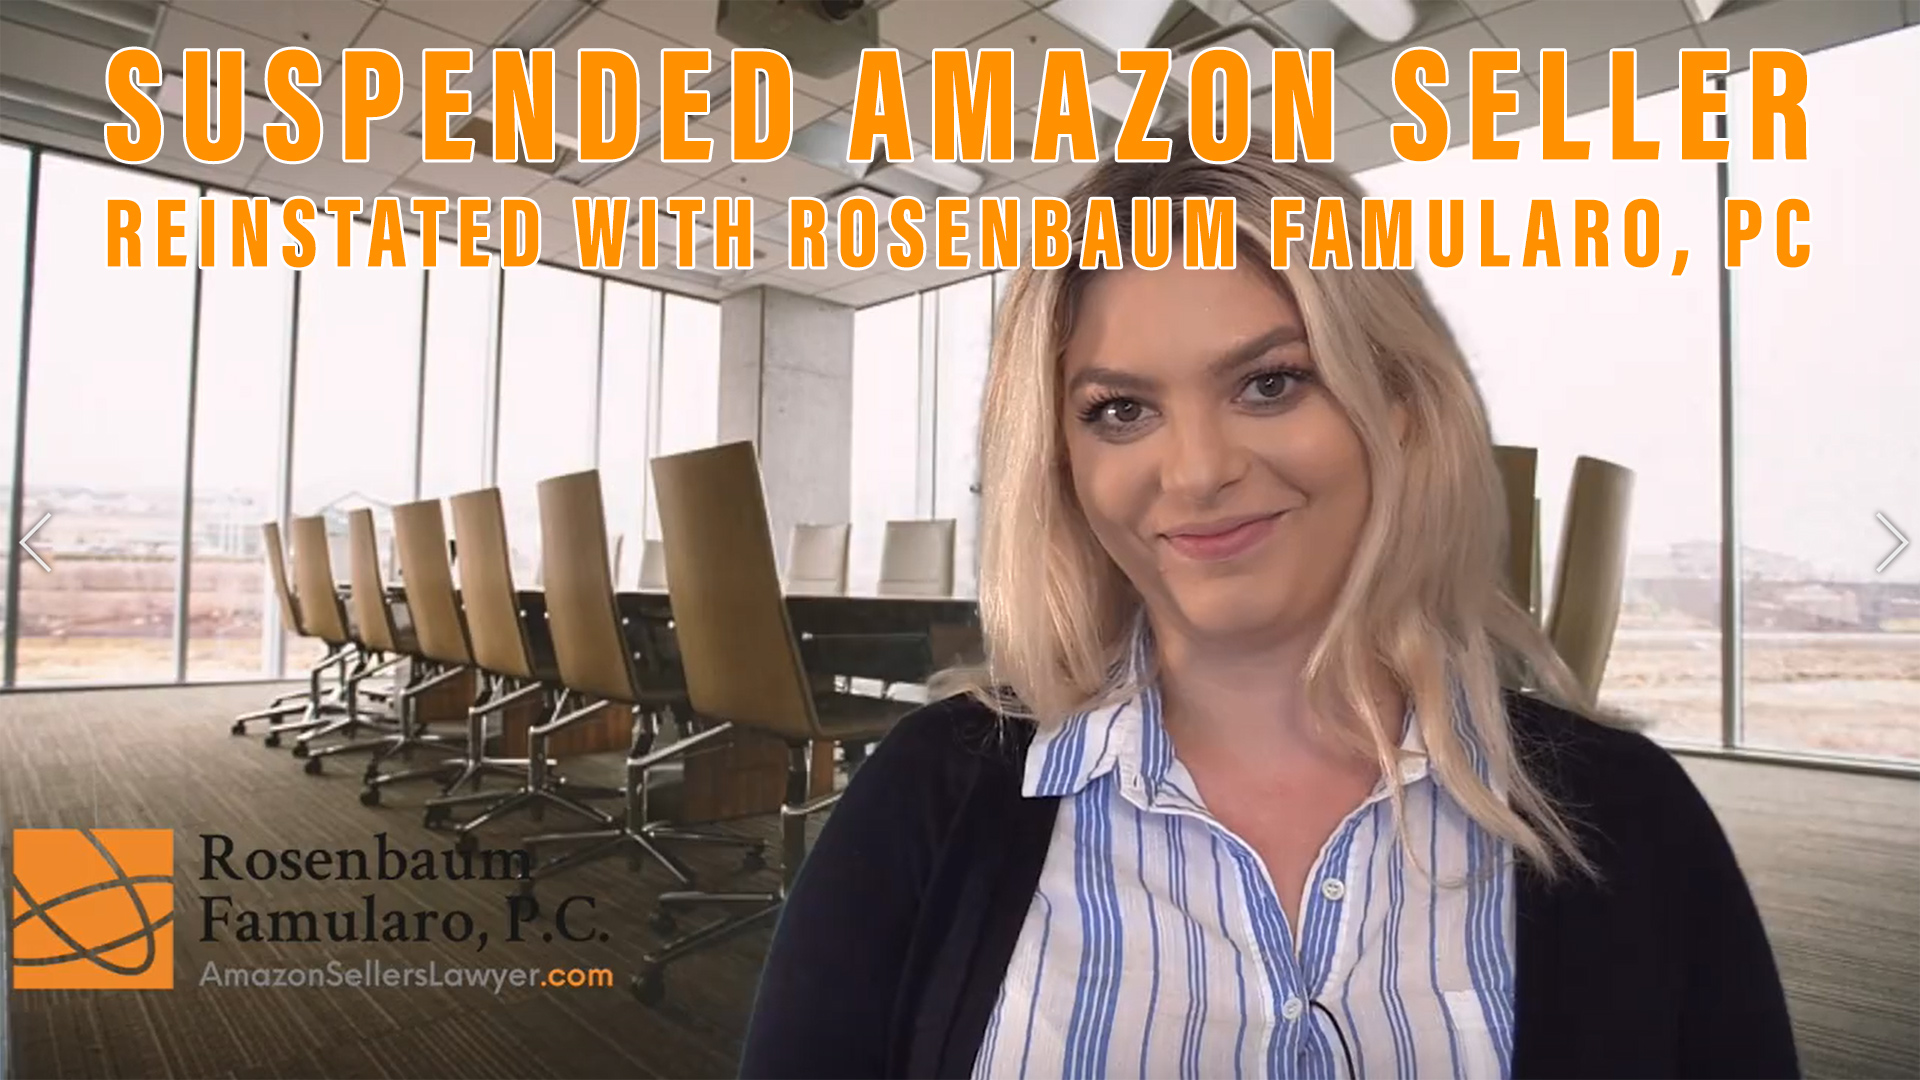 Another Suspended Amazon Seller Gets Reinstated